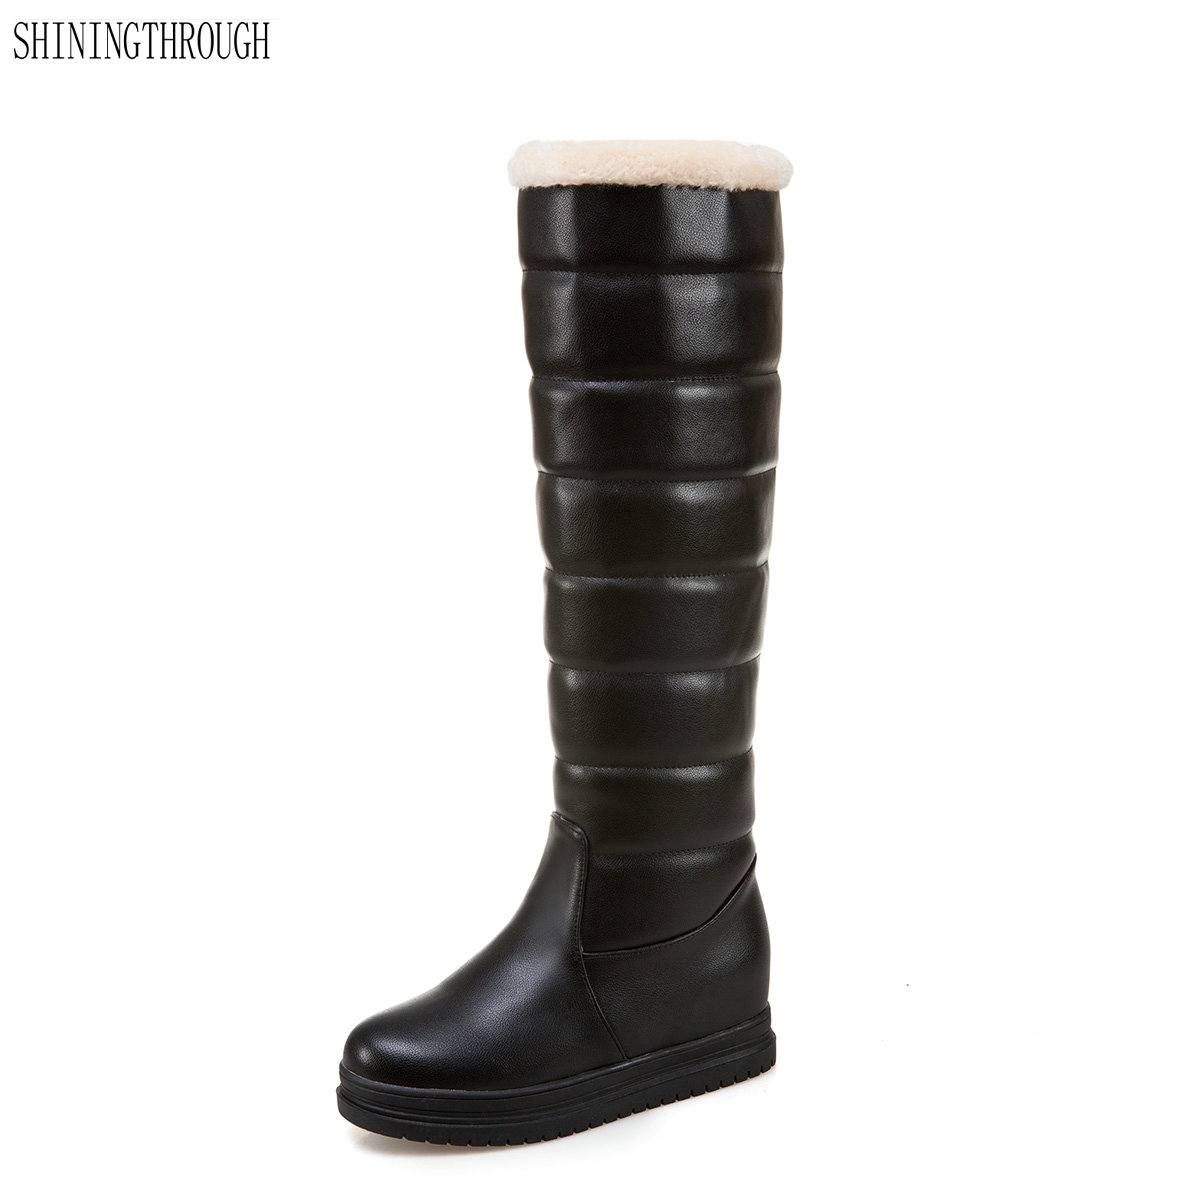 2018 New Women Boots Winter Knee High Office Las Boot Platform Snow Flat Shoes Black White Pink In From On